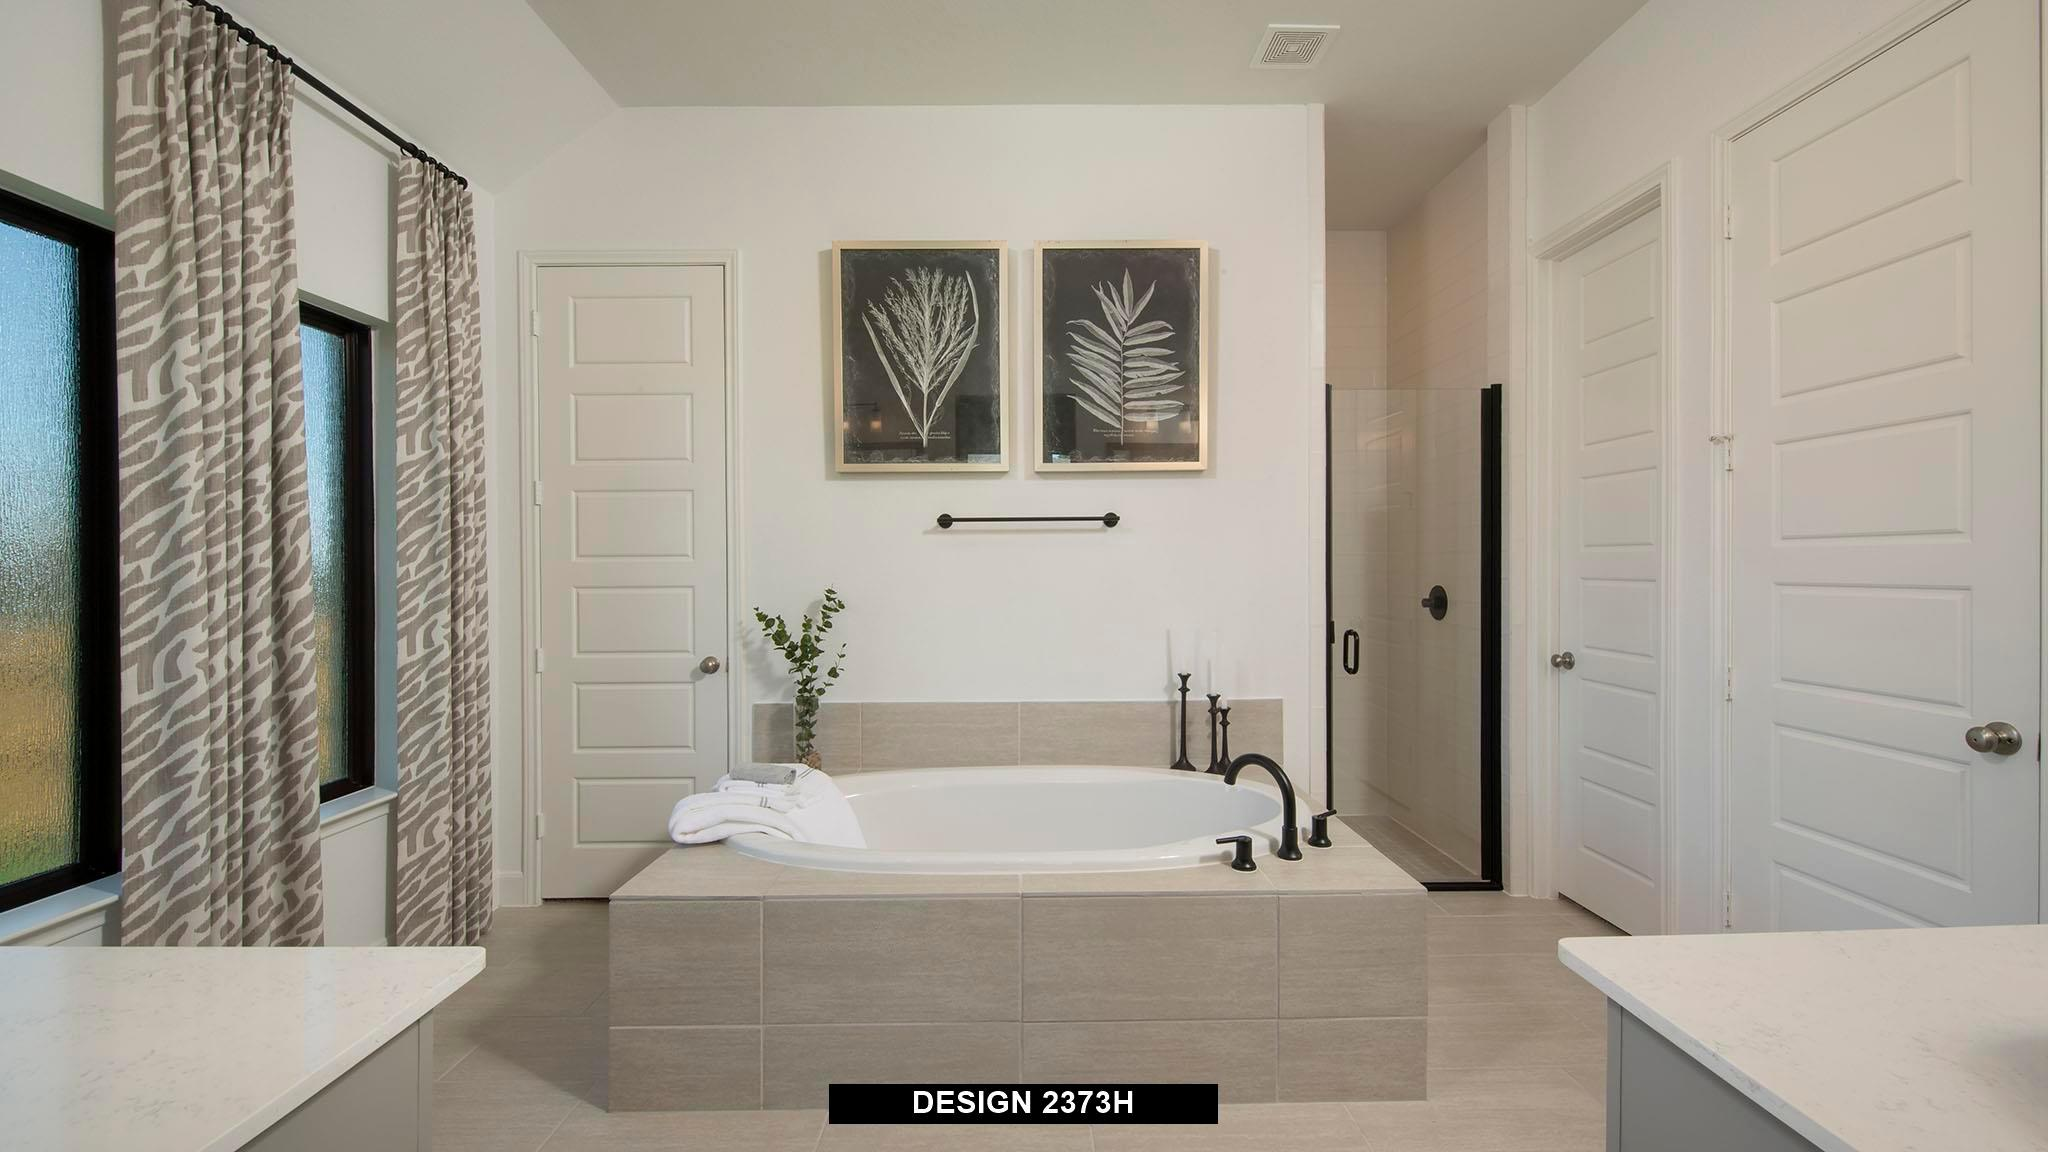 Bathroom featured in the 2373H By Perry Homes in Dallas, TX